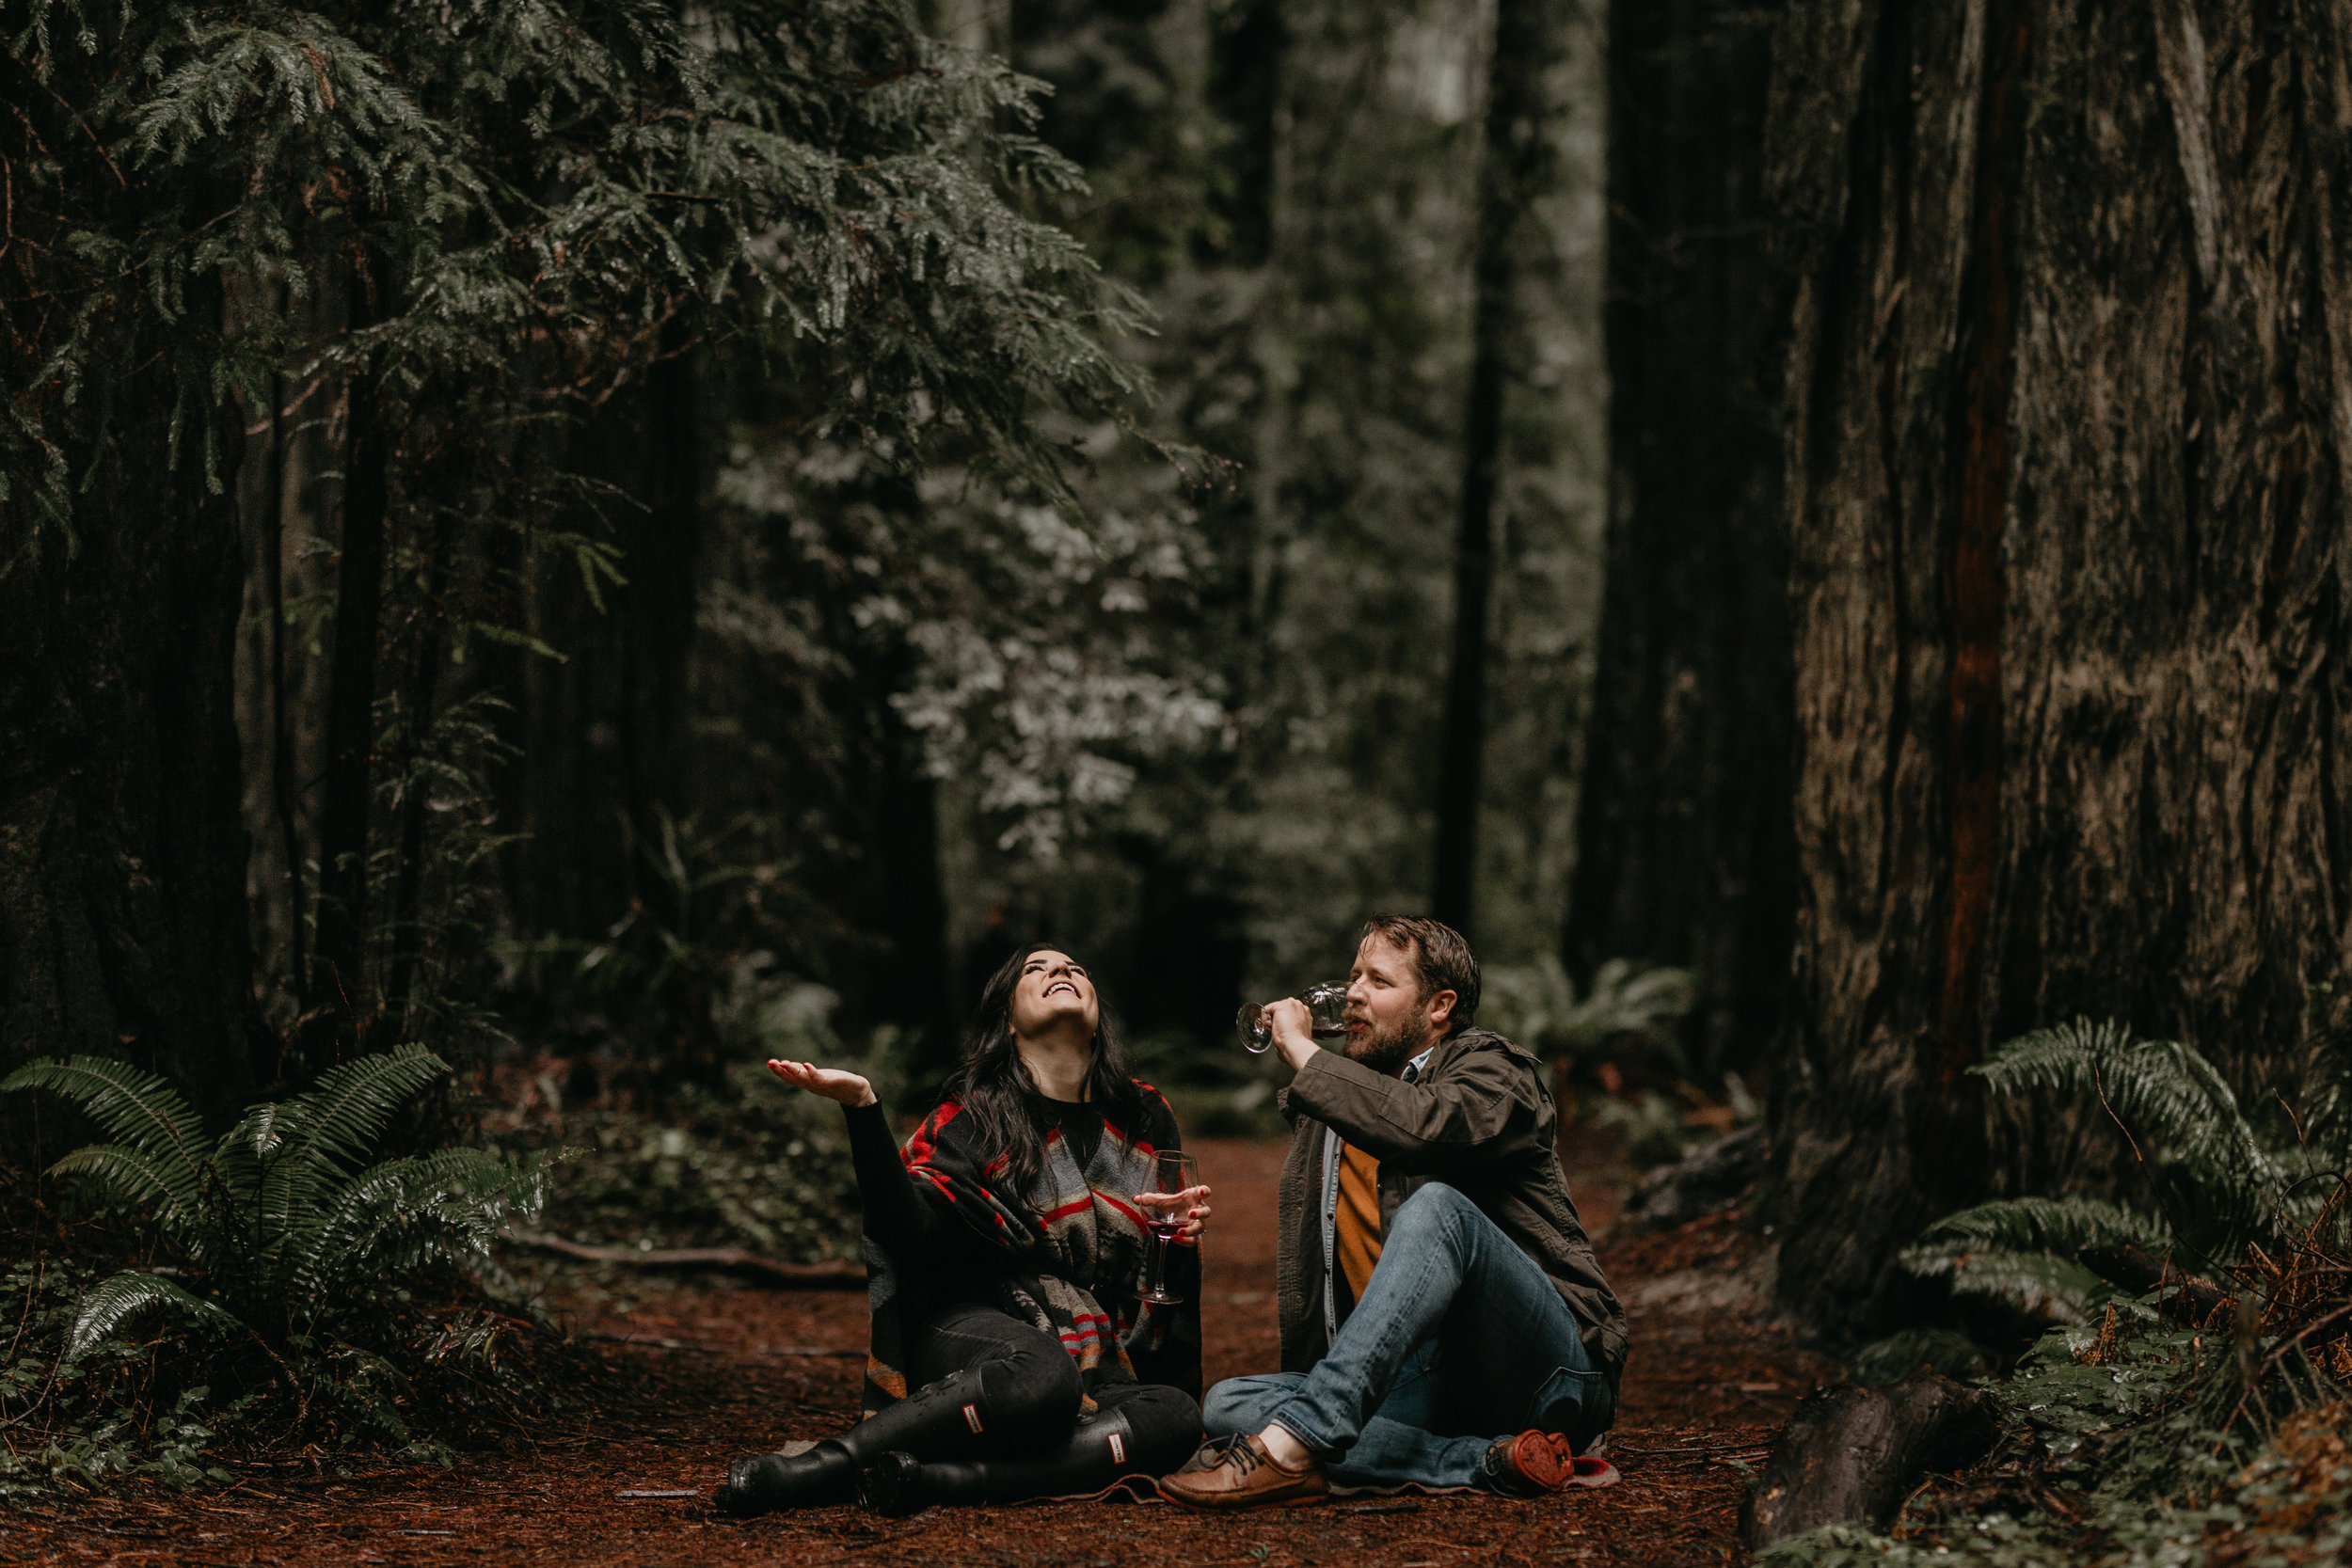 nicole-daacke-photography-redwoods-national-park-forest-rainy-foggy-adventure-engagement-session-humboldt-county-old-growth-redwood-tree-elopement-intimate-wedding-photographer-21.jpg